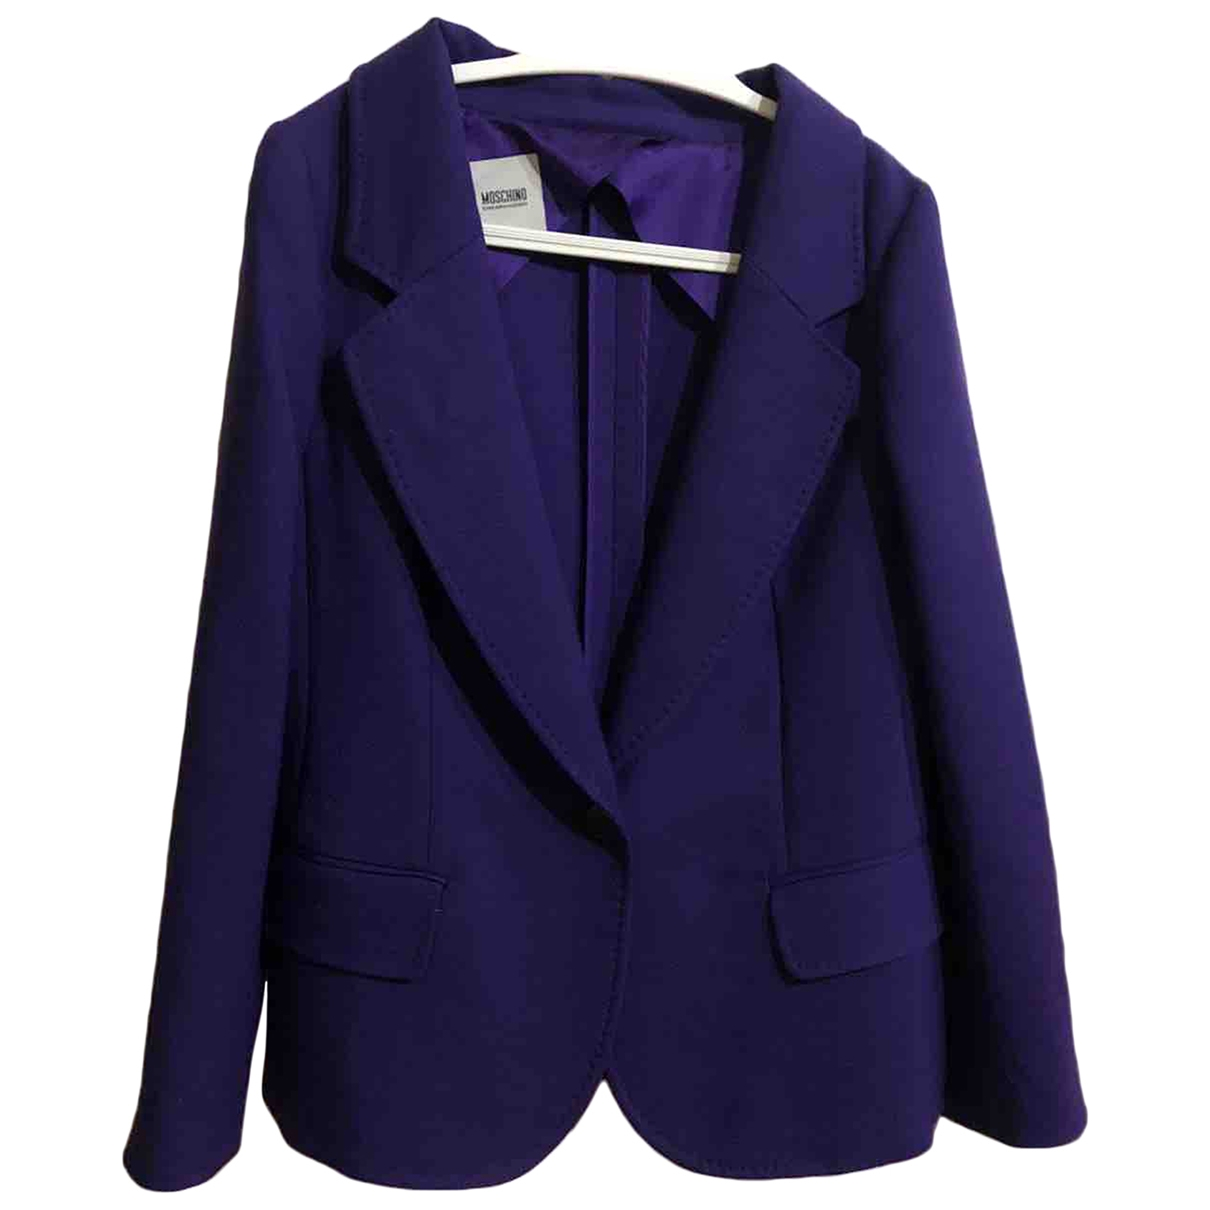 Moschino Cheap And Chic \N Wool jacket for Women 44 IT